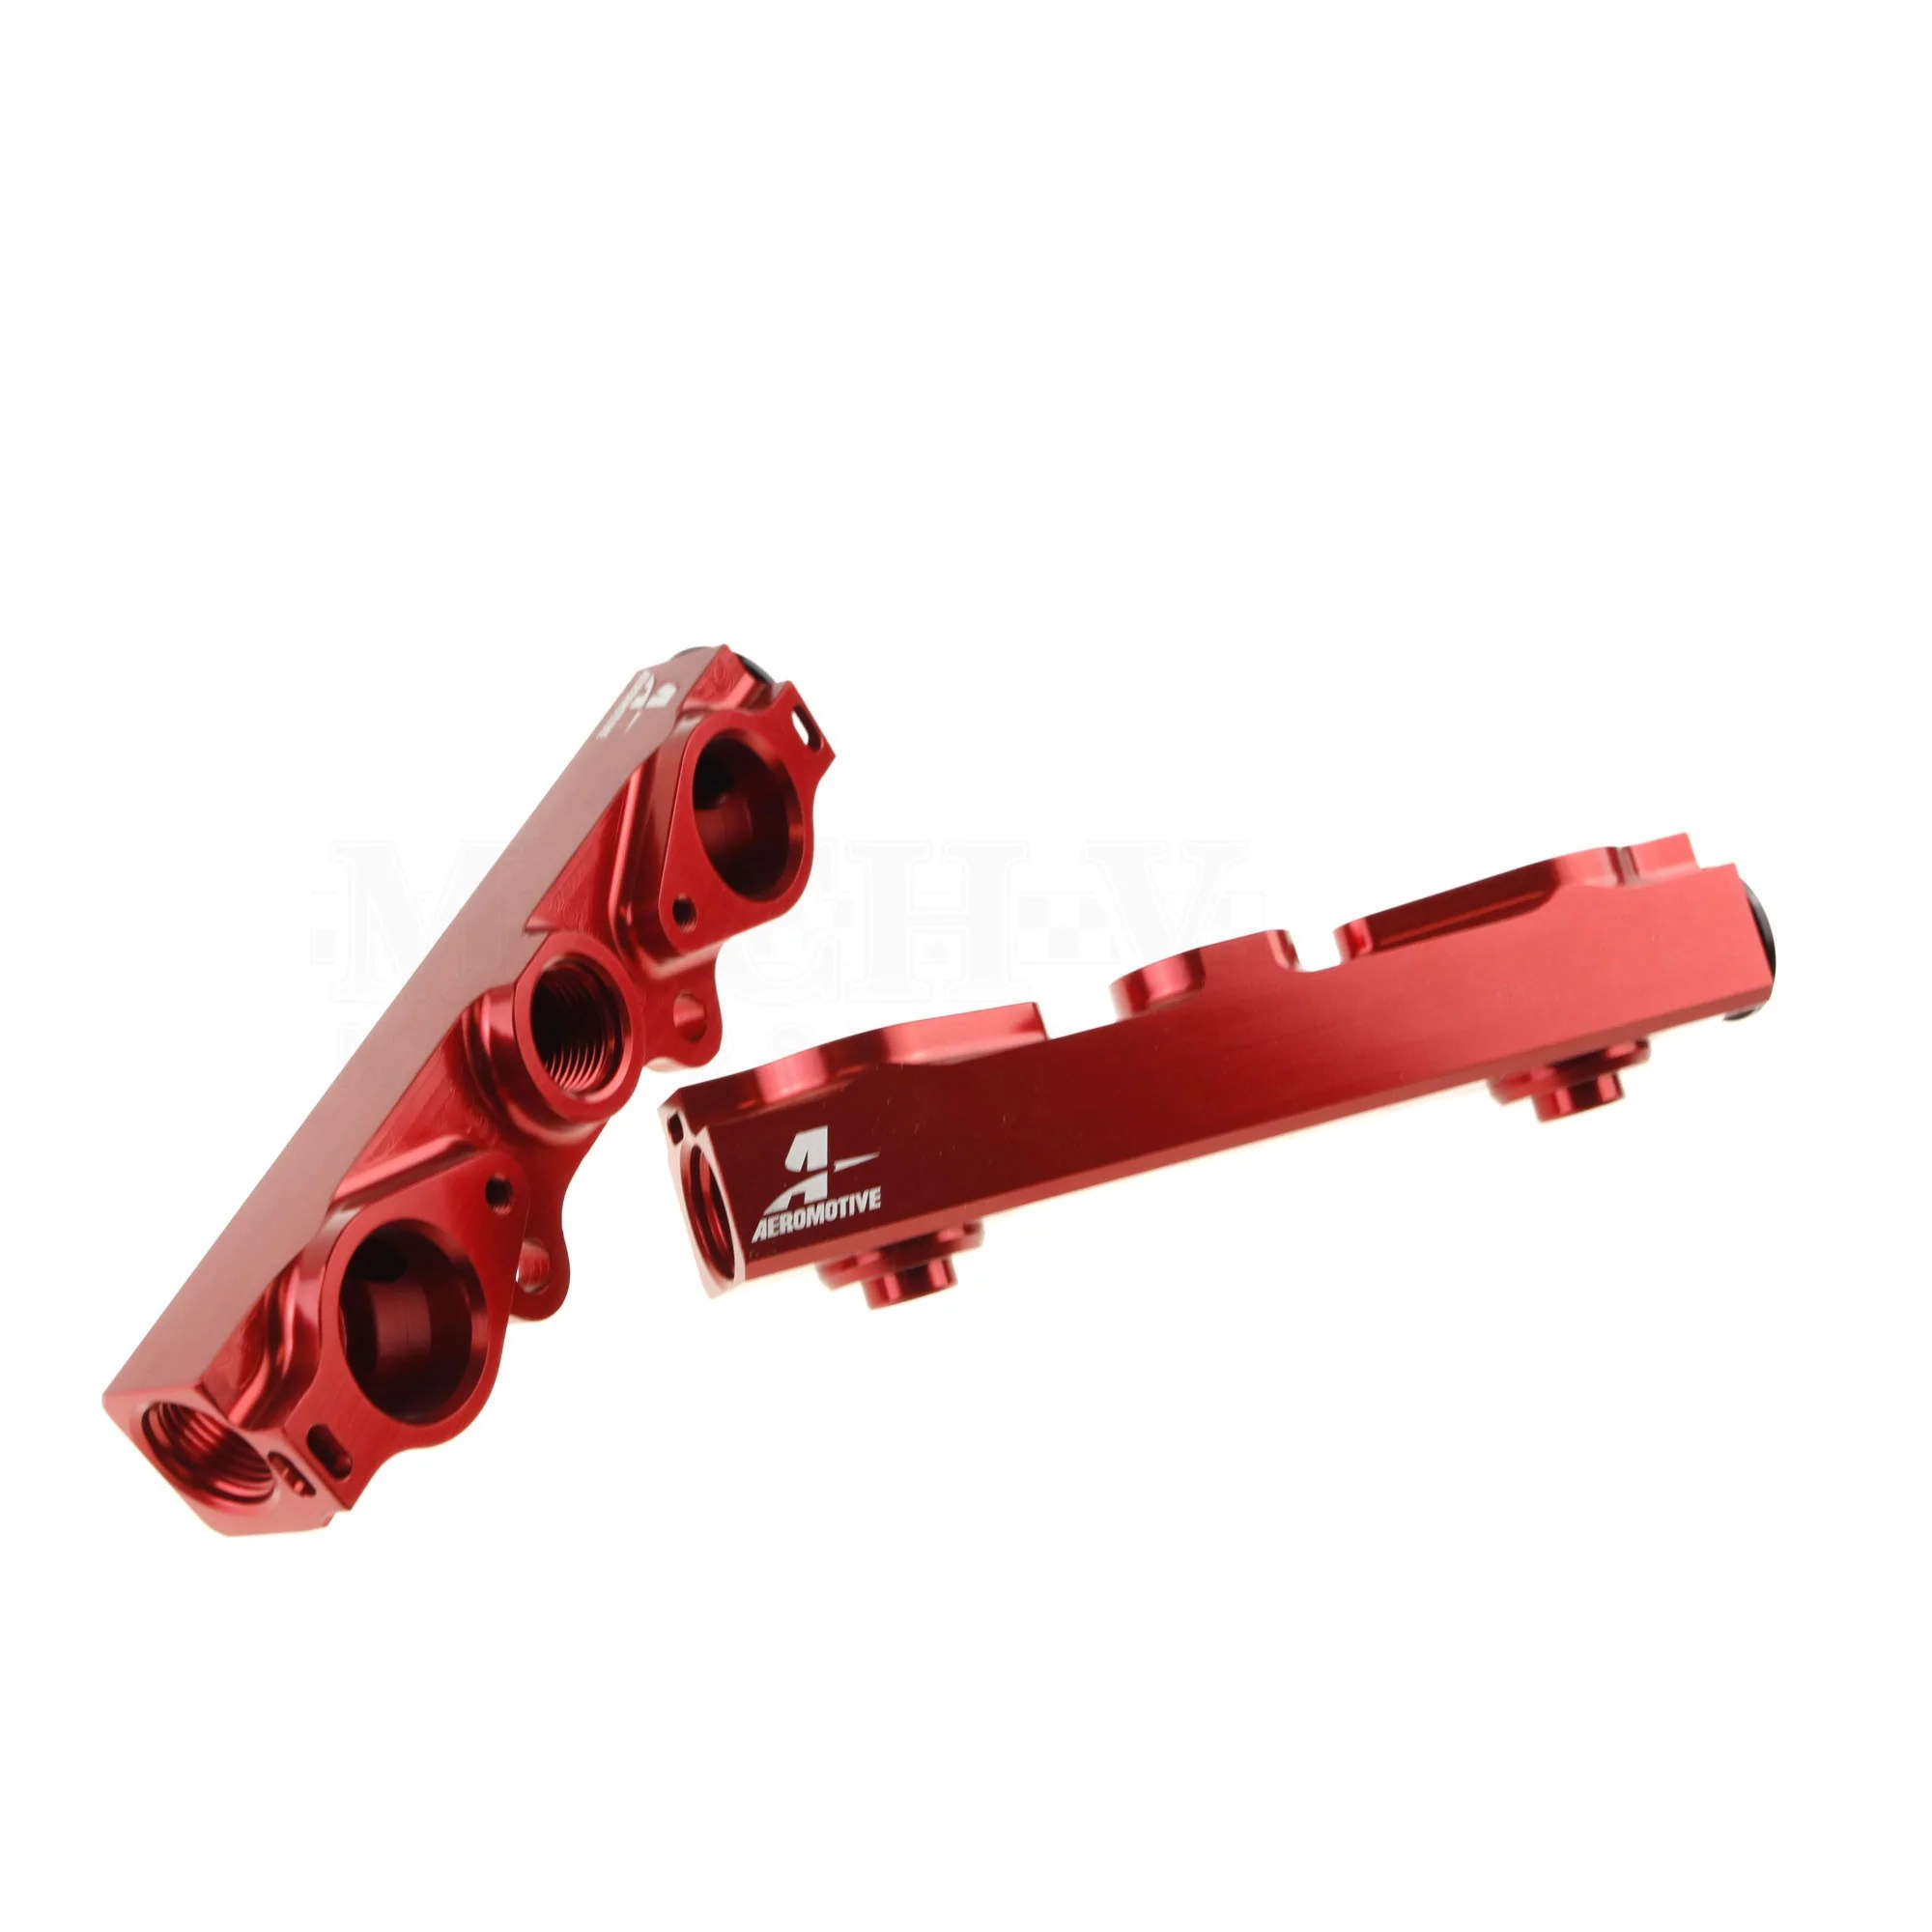 aeromotive side feed fuel rail 2004 2006 sti [ 2000 x 2000 Pixel ]